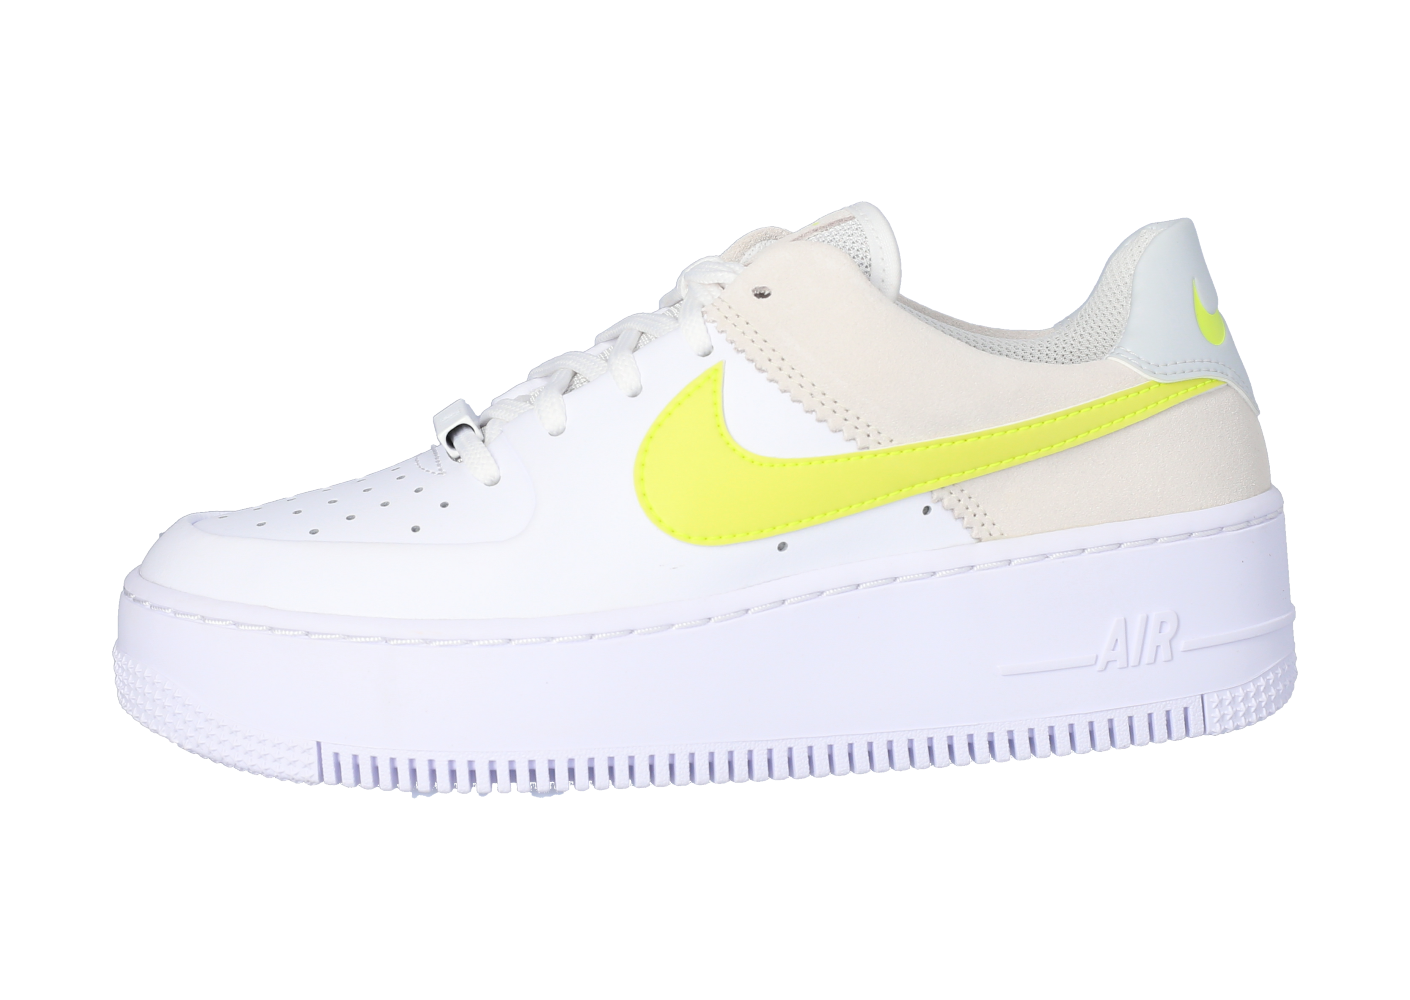 Nike Air Force 1 Sage Low blanche et jaune - Chaussures Baskets ...